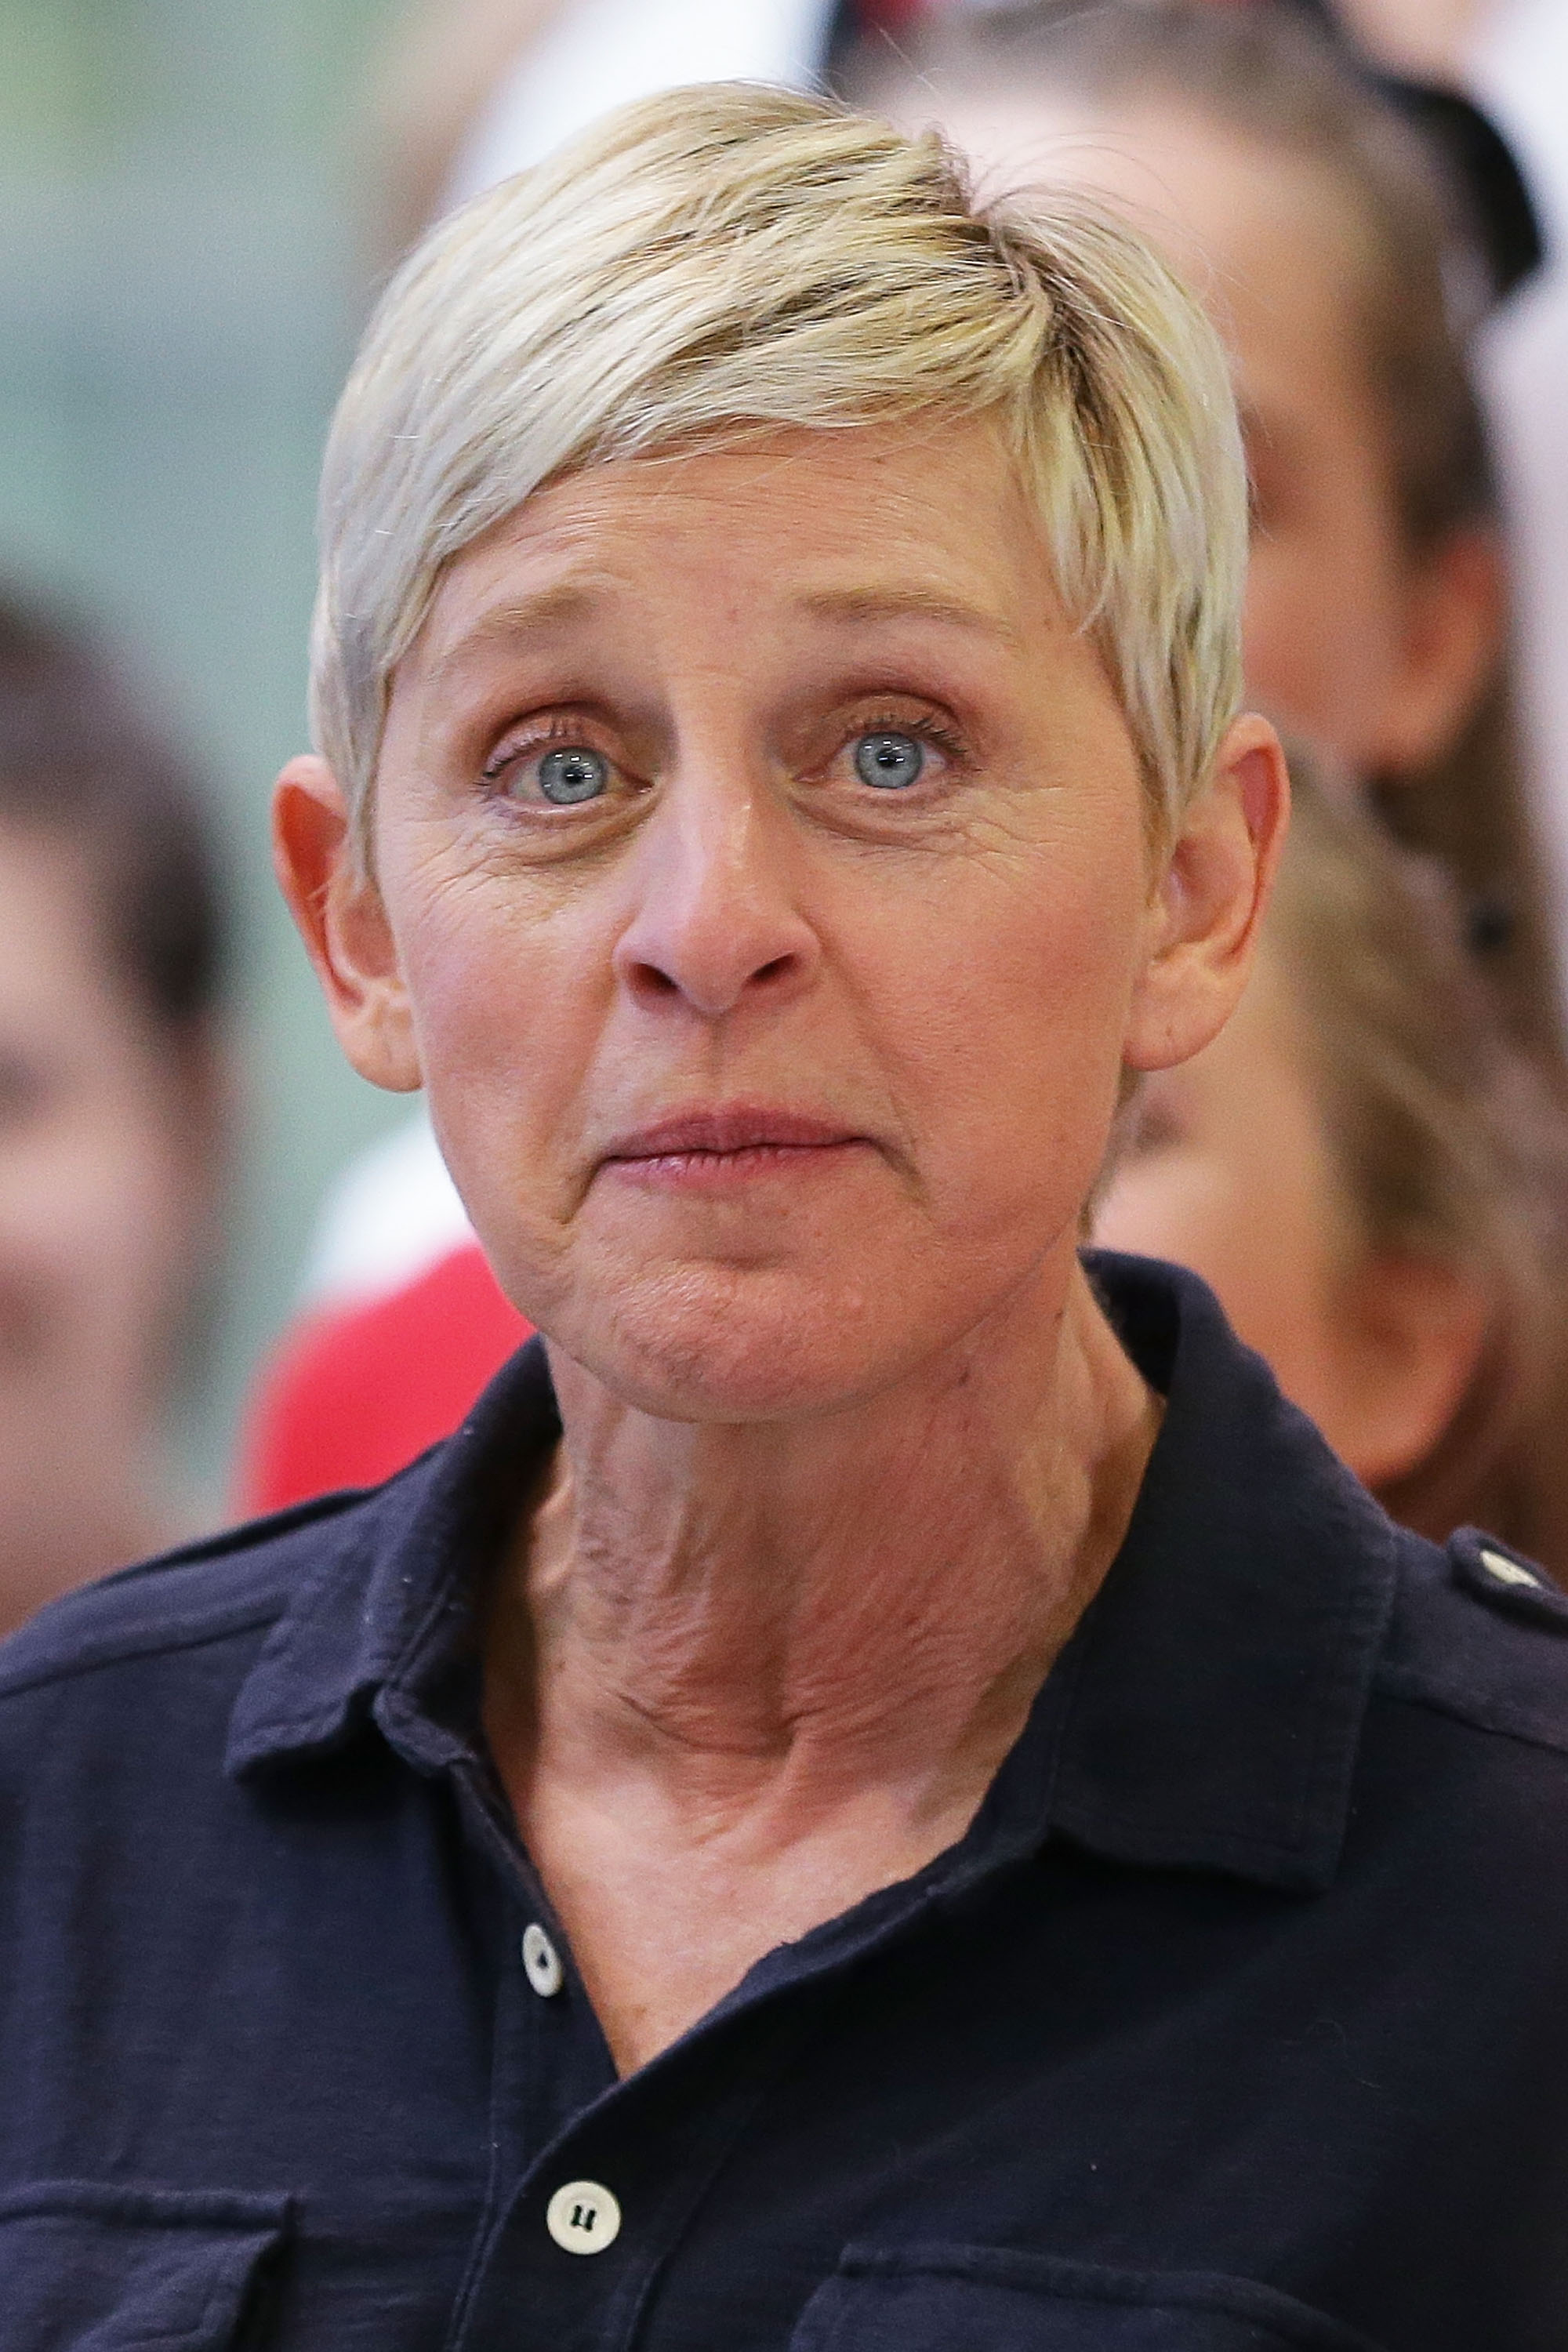 Ellen DeGeneres arrives in Sydney, Australia to film her show on March 22, 2013 | Photo: Getty Images